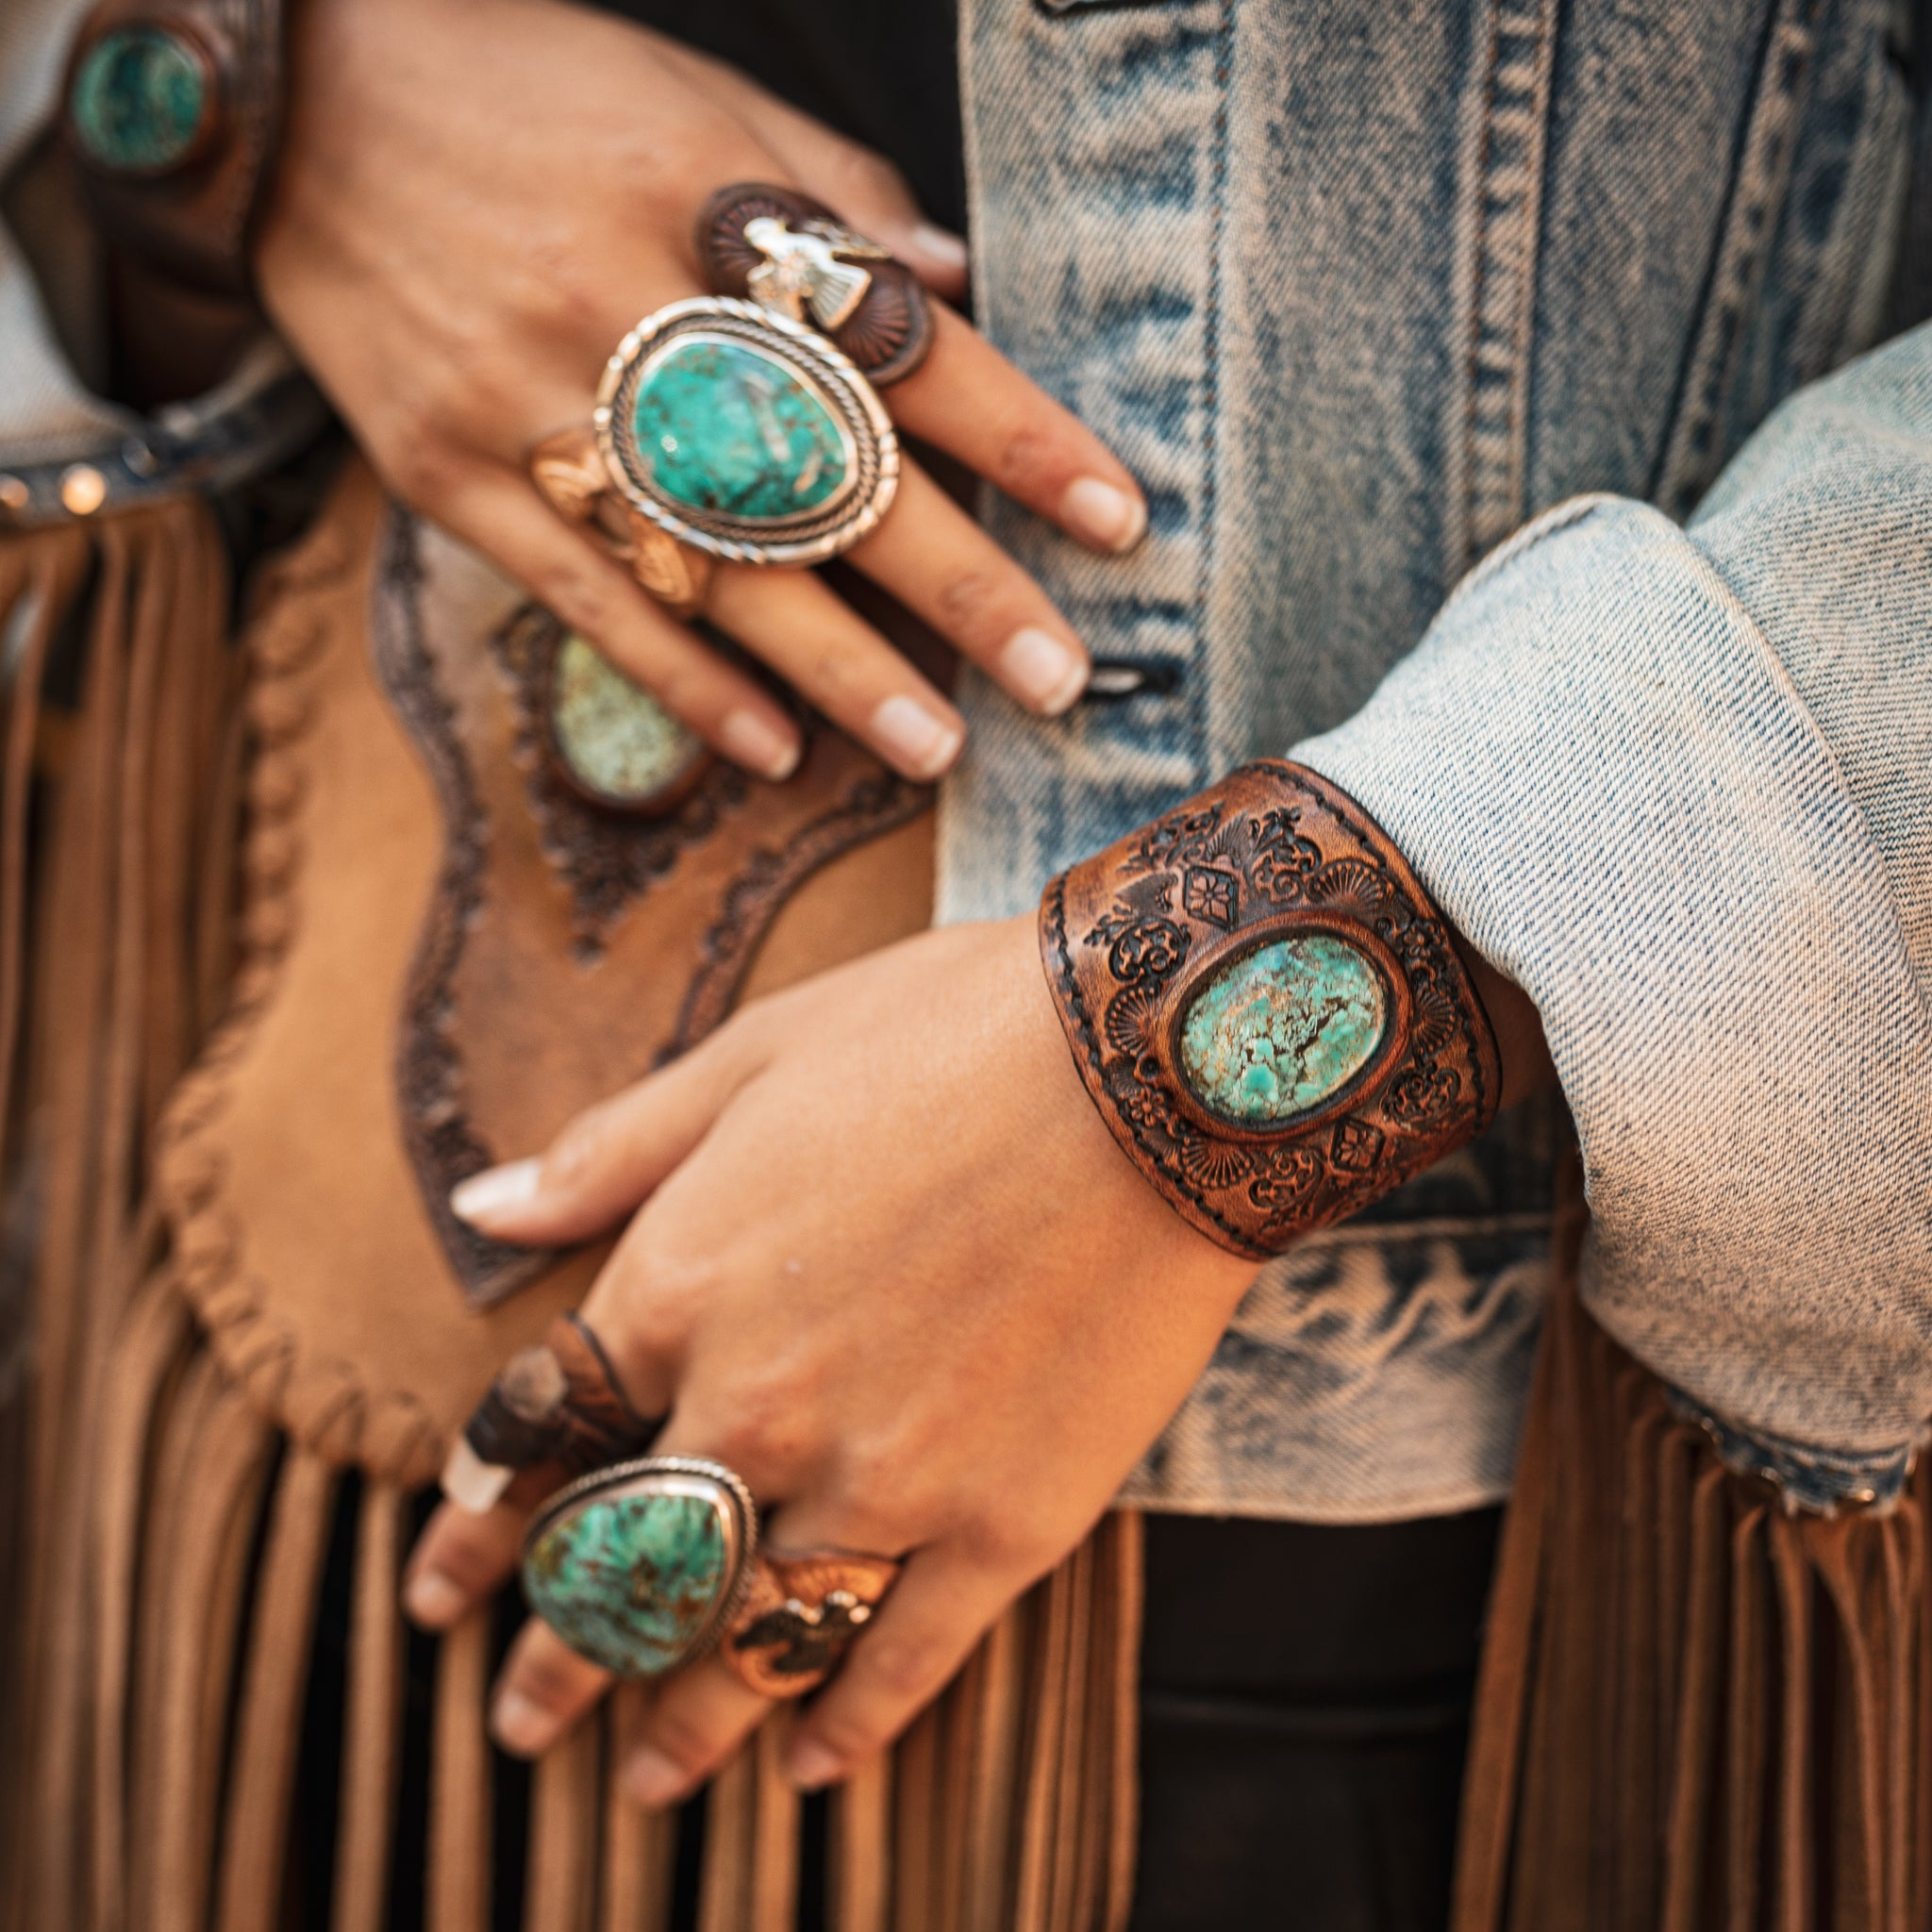 Turquoise and leather accessories